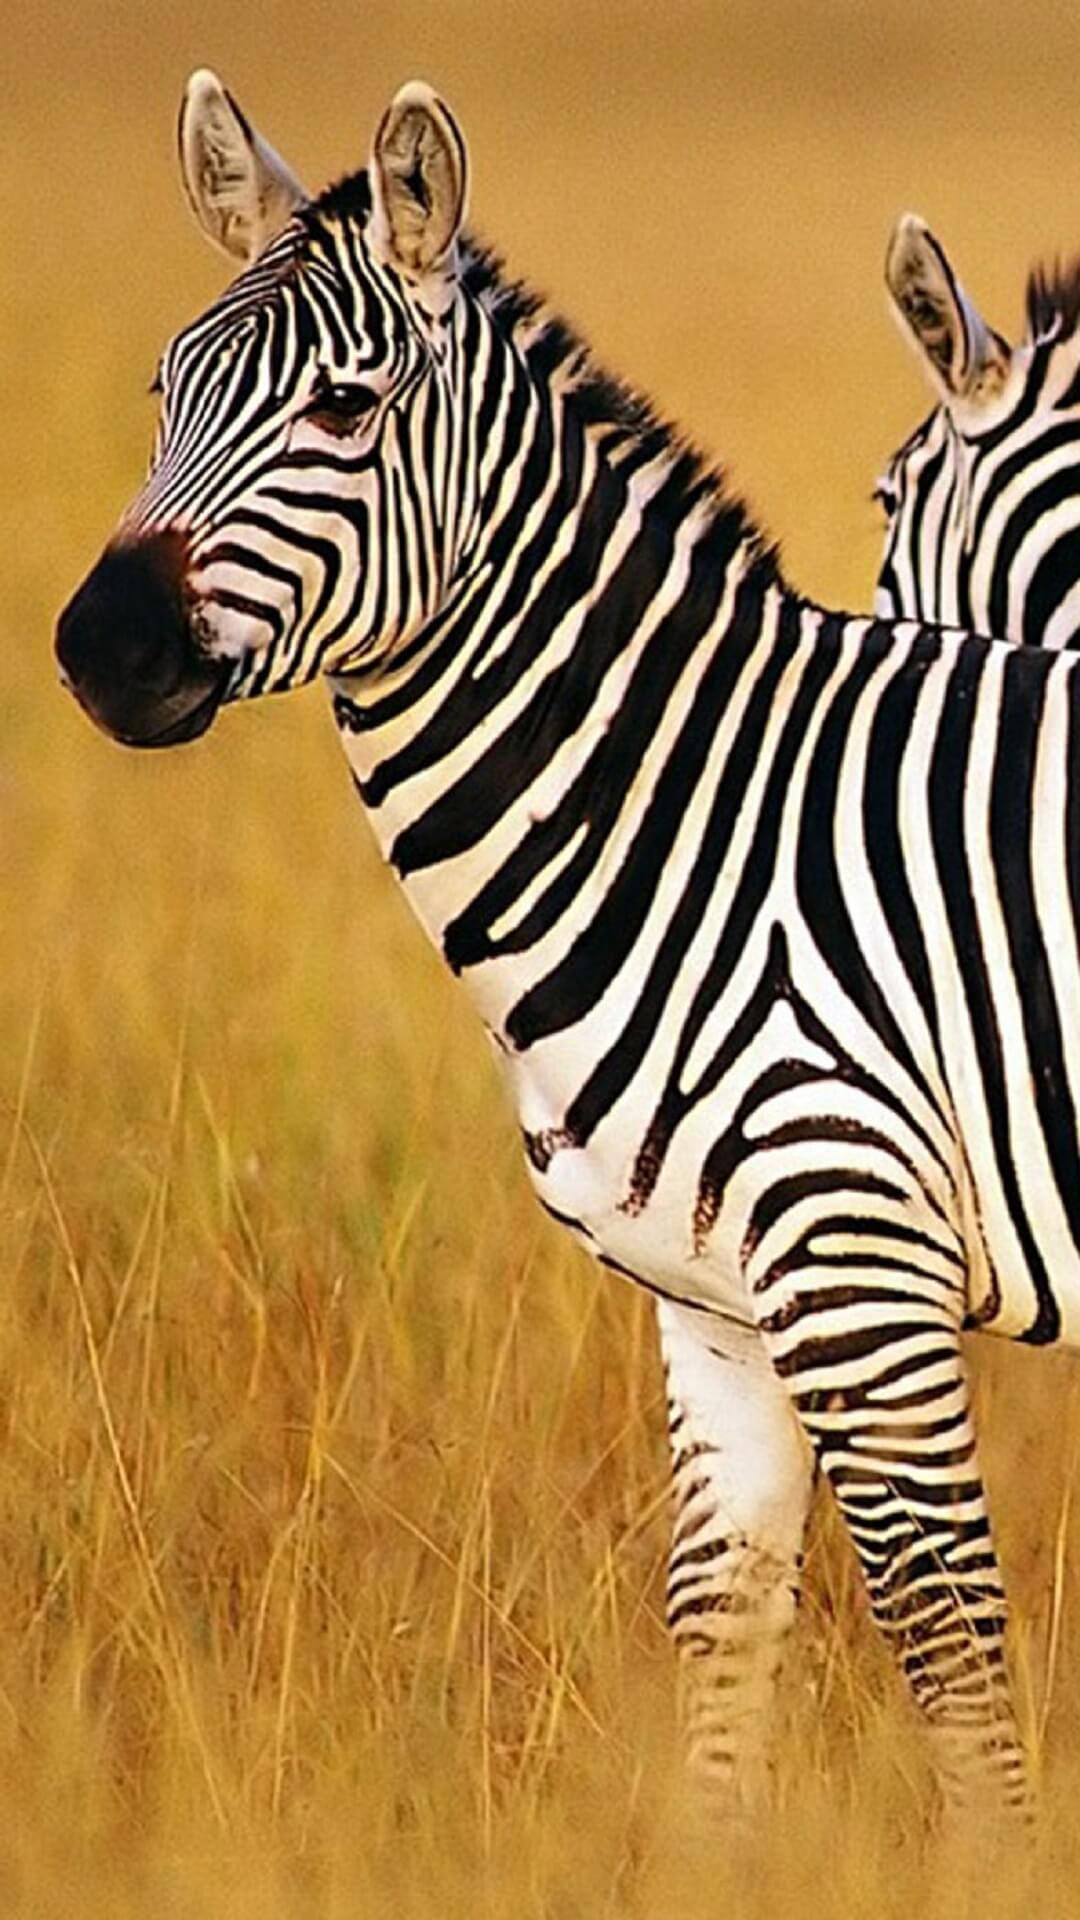 Zebra Wallpapers HD for Android - APK ...